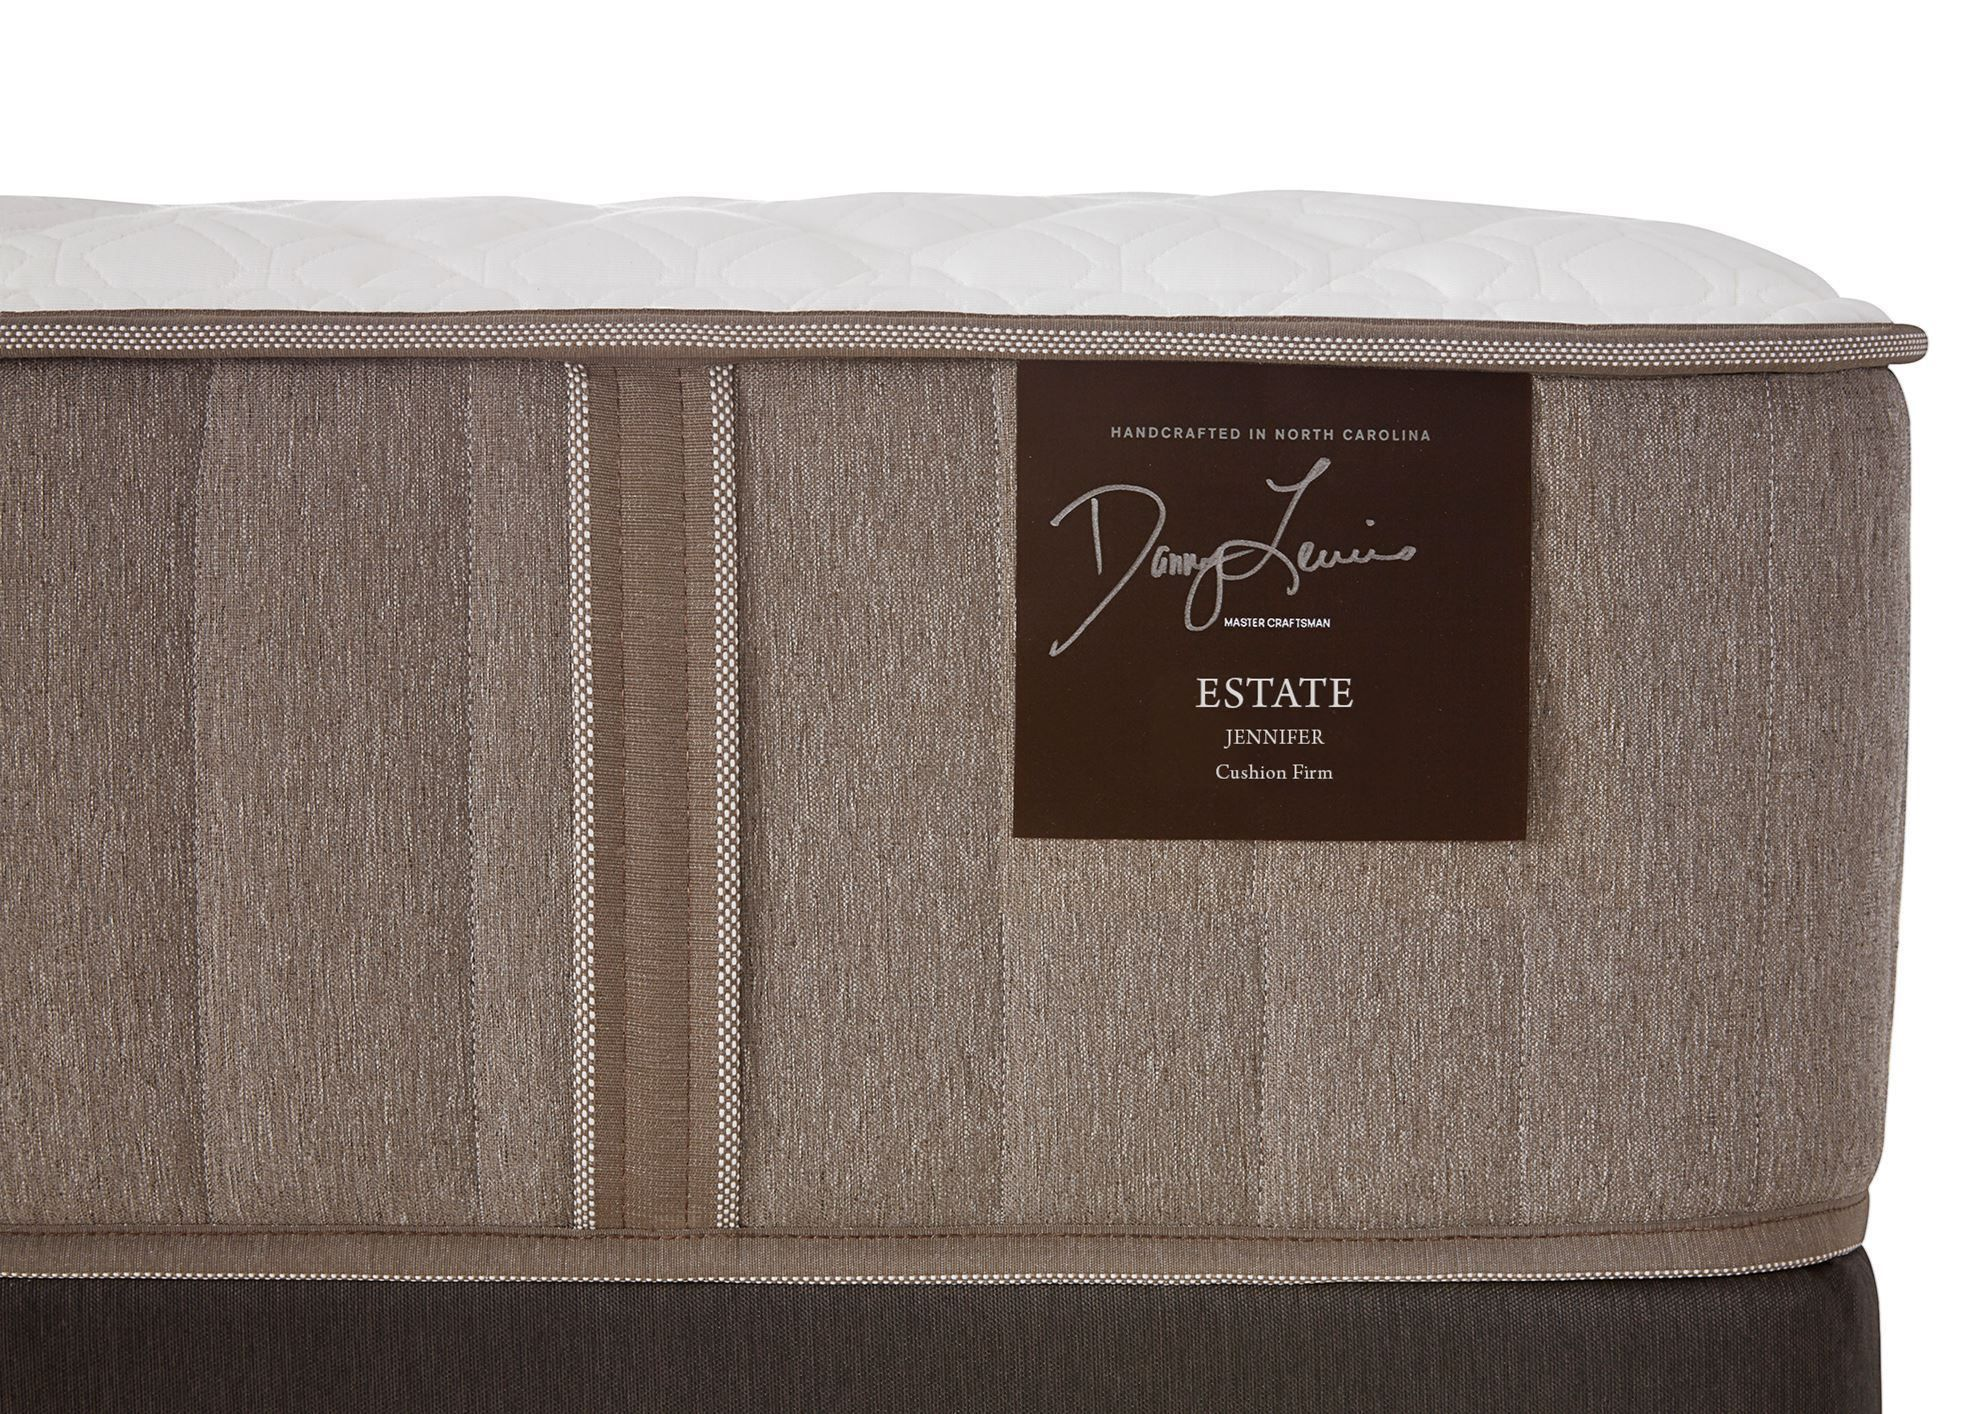 Picture of Stearns & Foster Scarborough Plush Pillowtop Full Flat Foundation Set